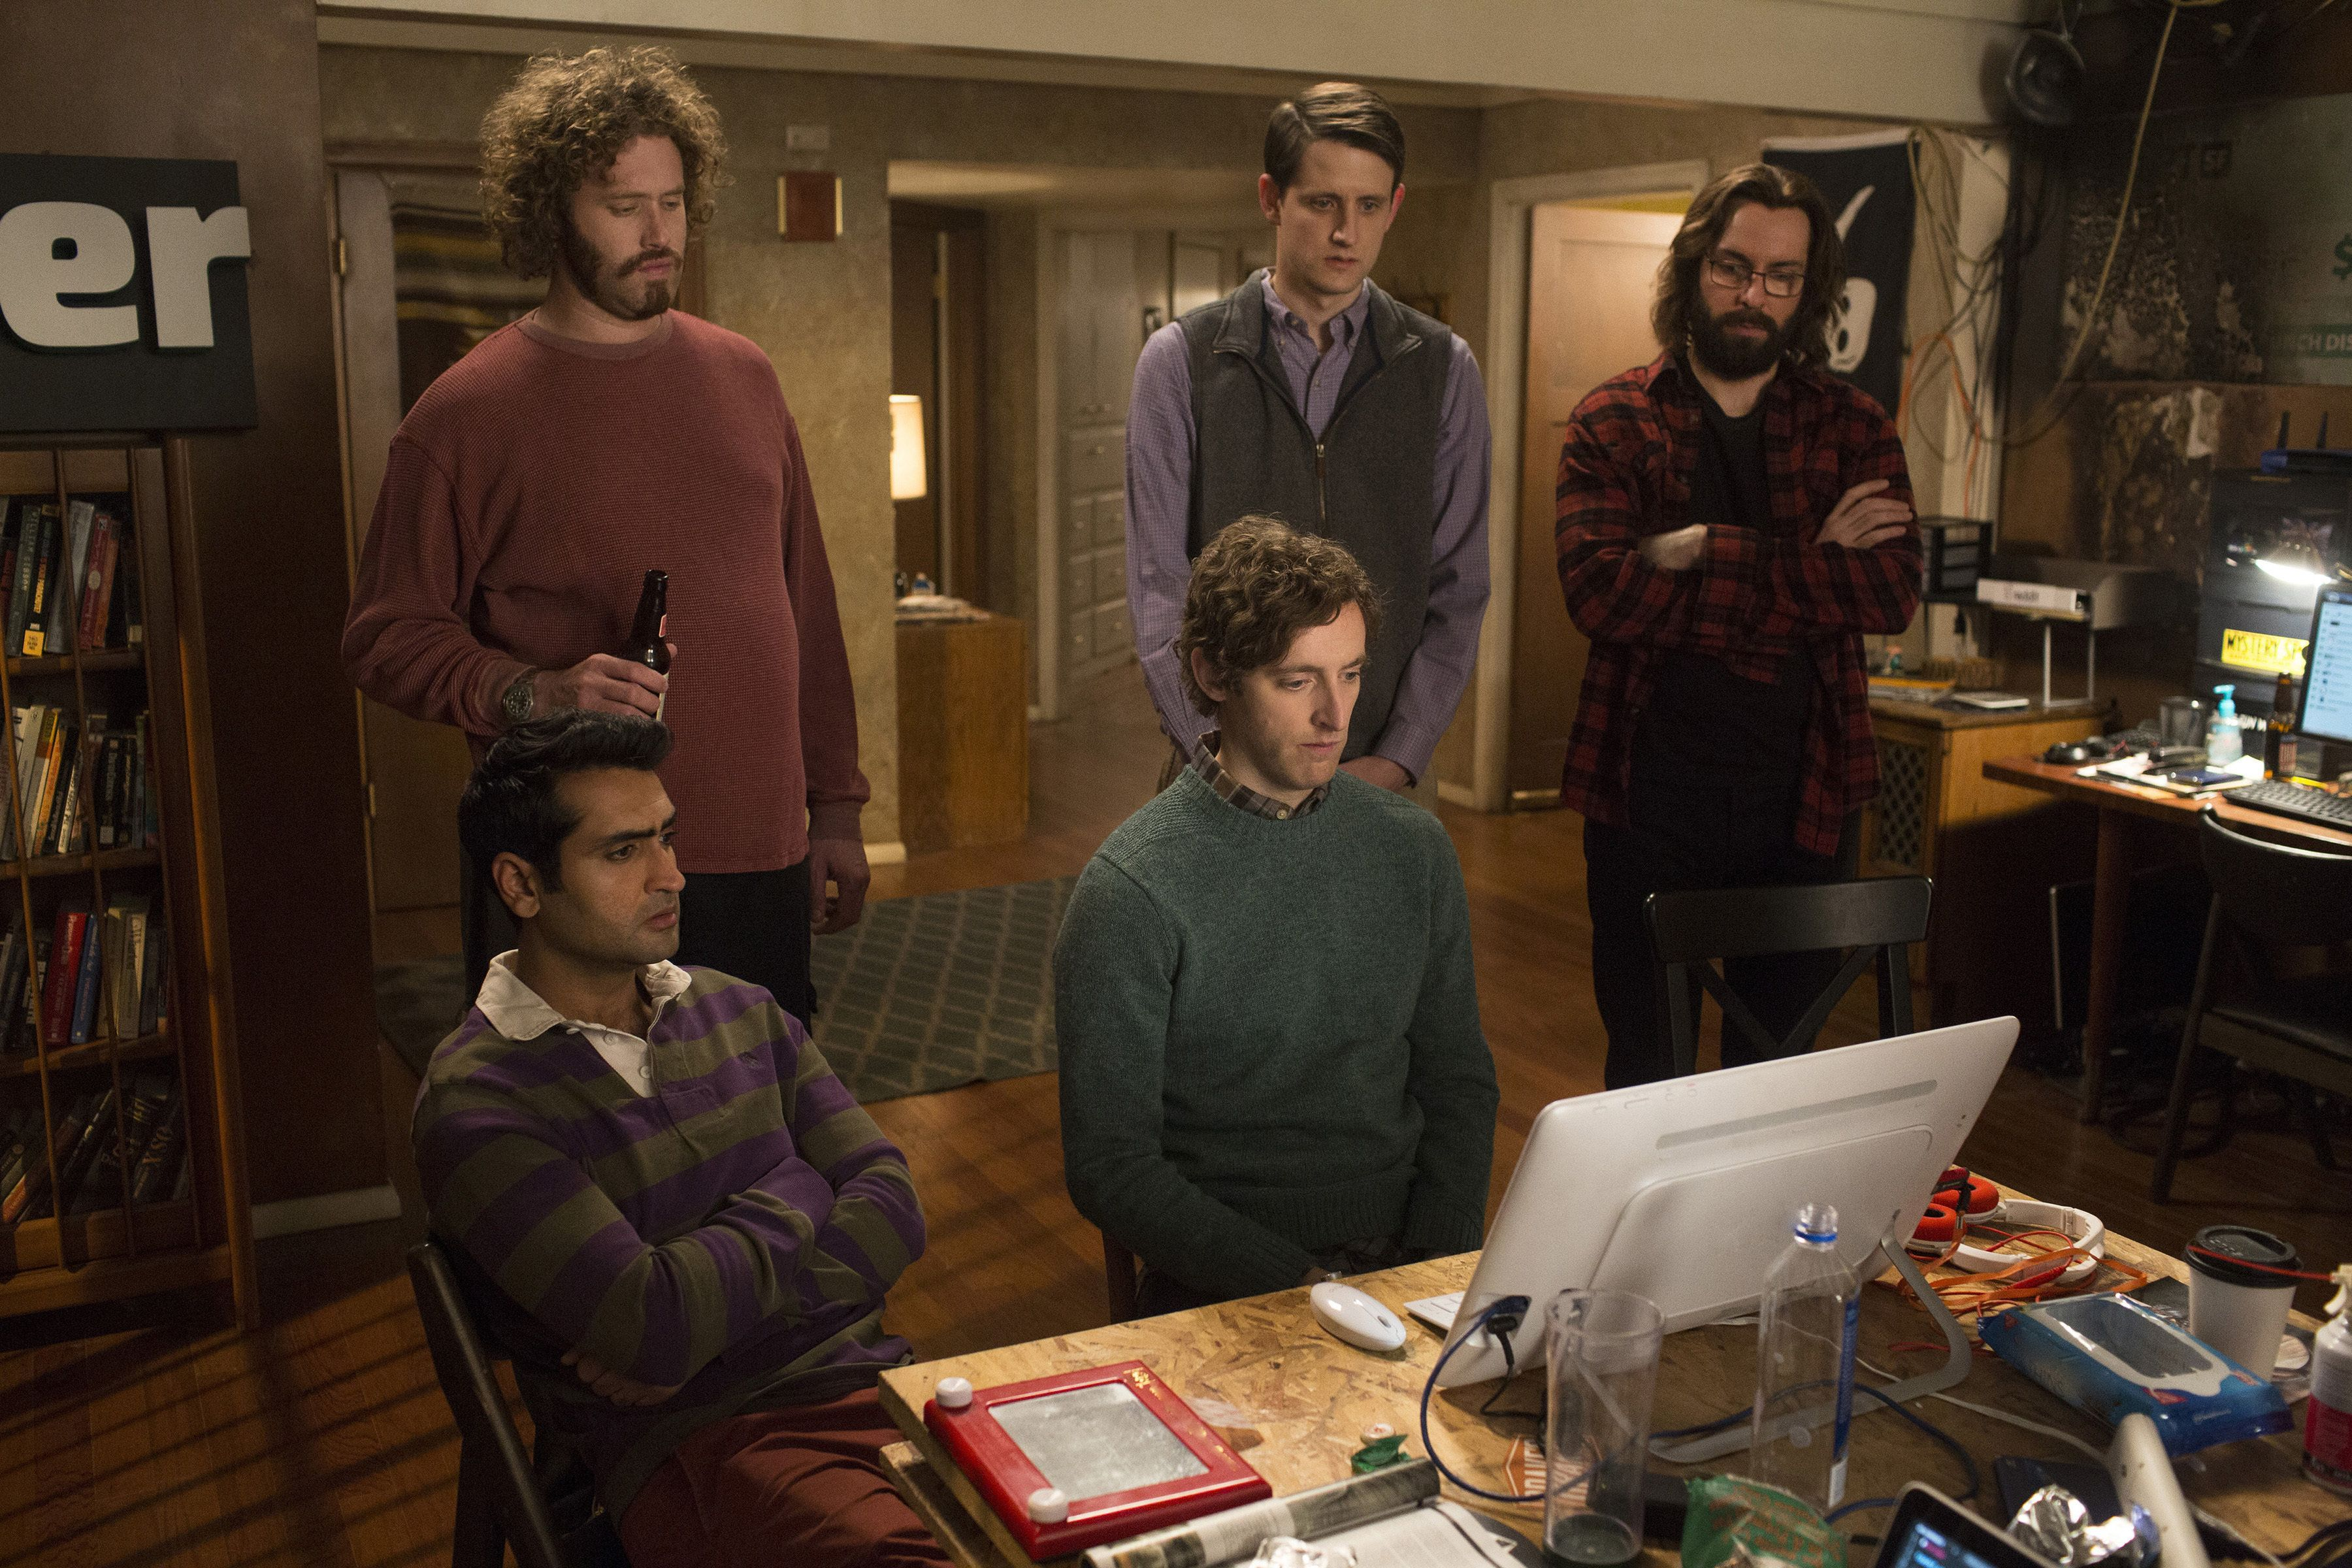 """Kumail Nanjiani, T.J. Miller, Zach Woods, Thomas Middleditch and Martin Starr in Season 3 of """"Silicon Valley."""""""